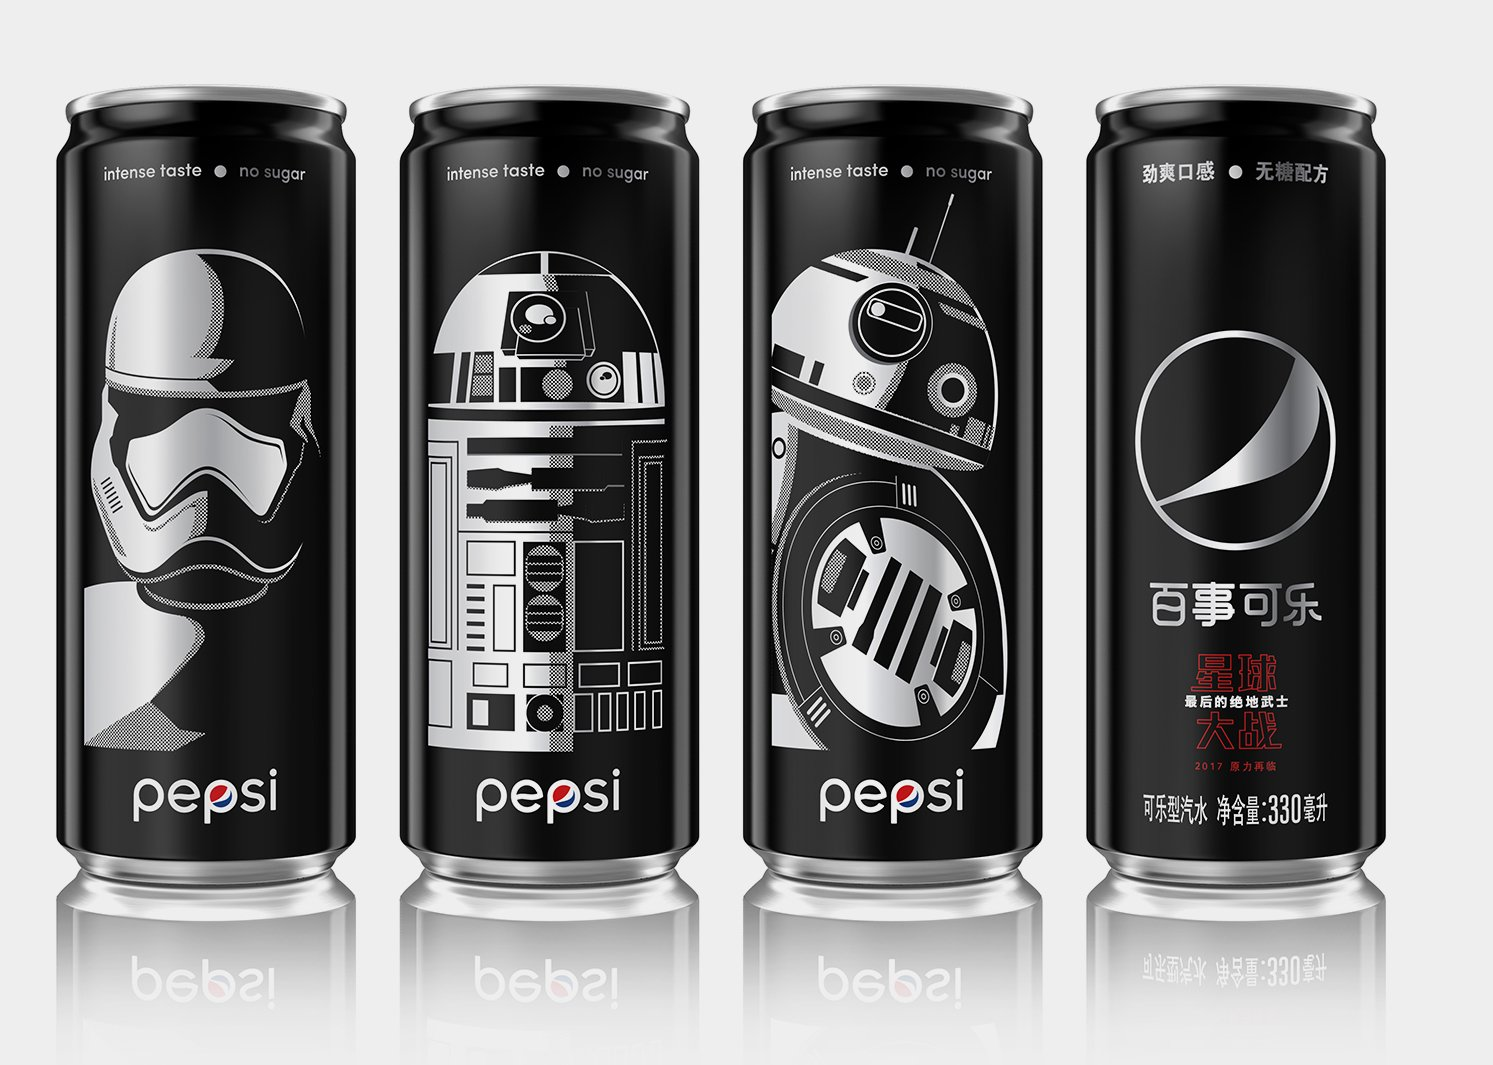 Pepsi Black x Star Wars LTO China Brand Packaging by PepsiCo Design and Innovation, adesignawards